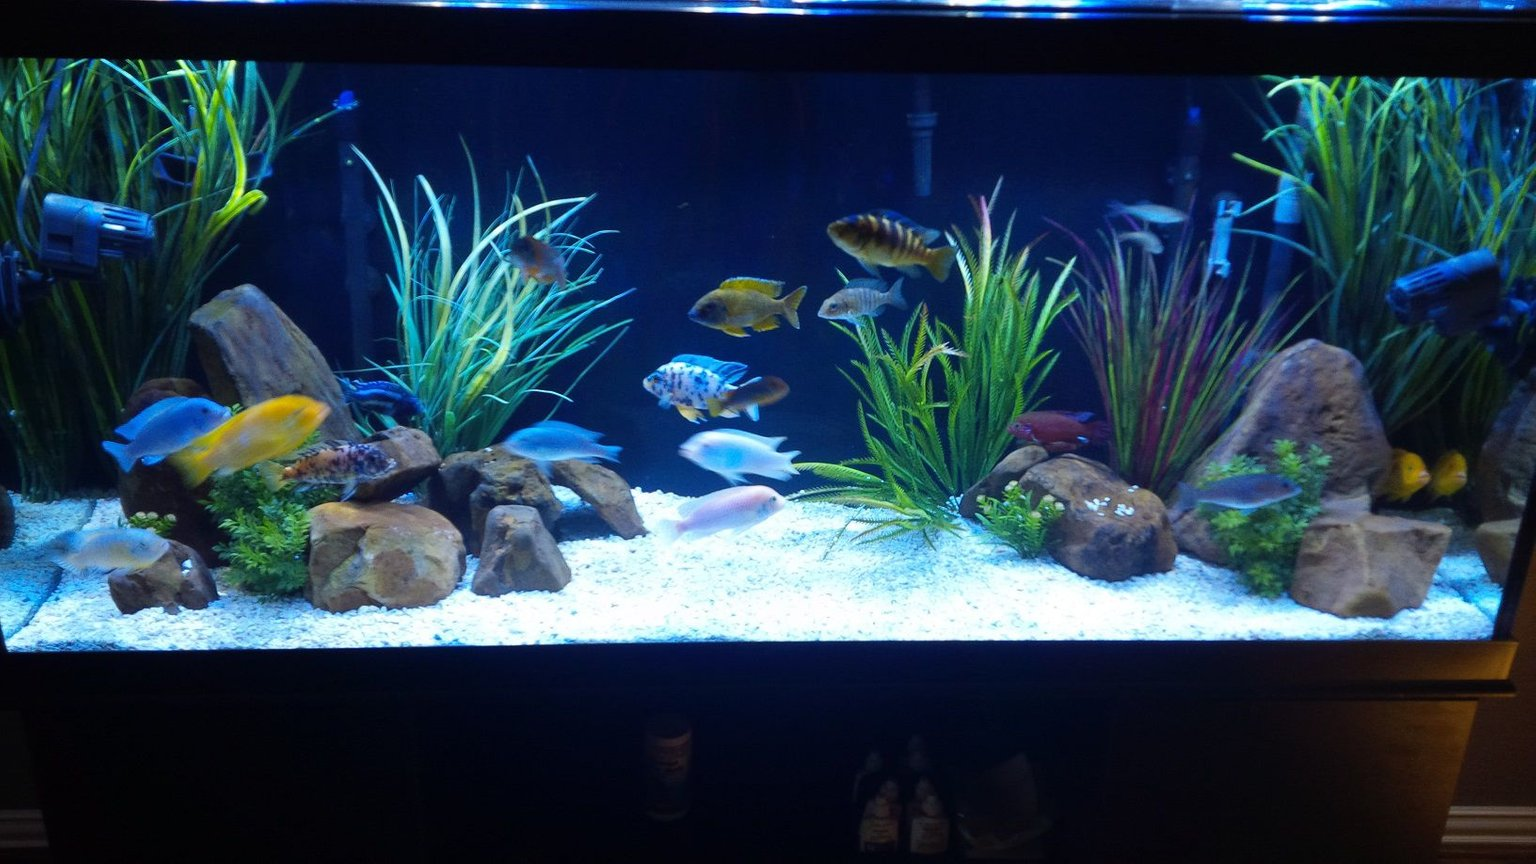 120 gallons freshwater fish tank (mostly fish and non-living decorations) - 120 gallon mbuna-peacock tank with 9 more peacocks on the way.